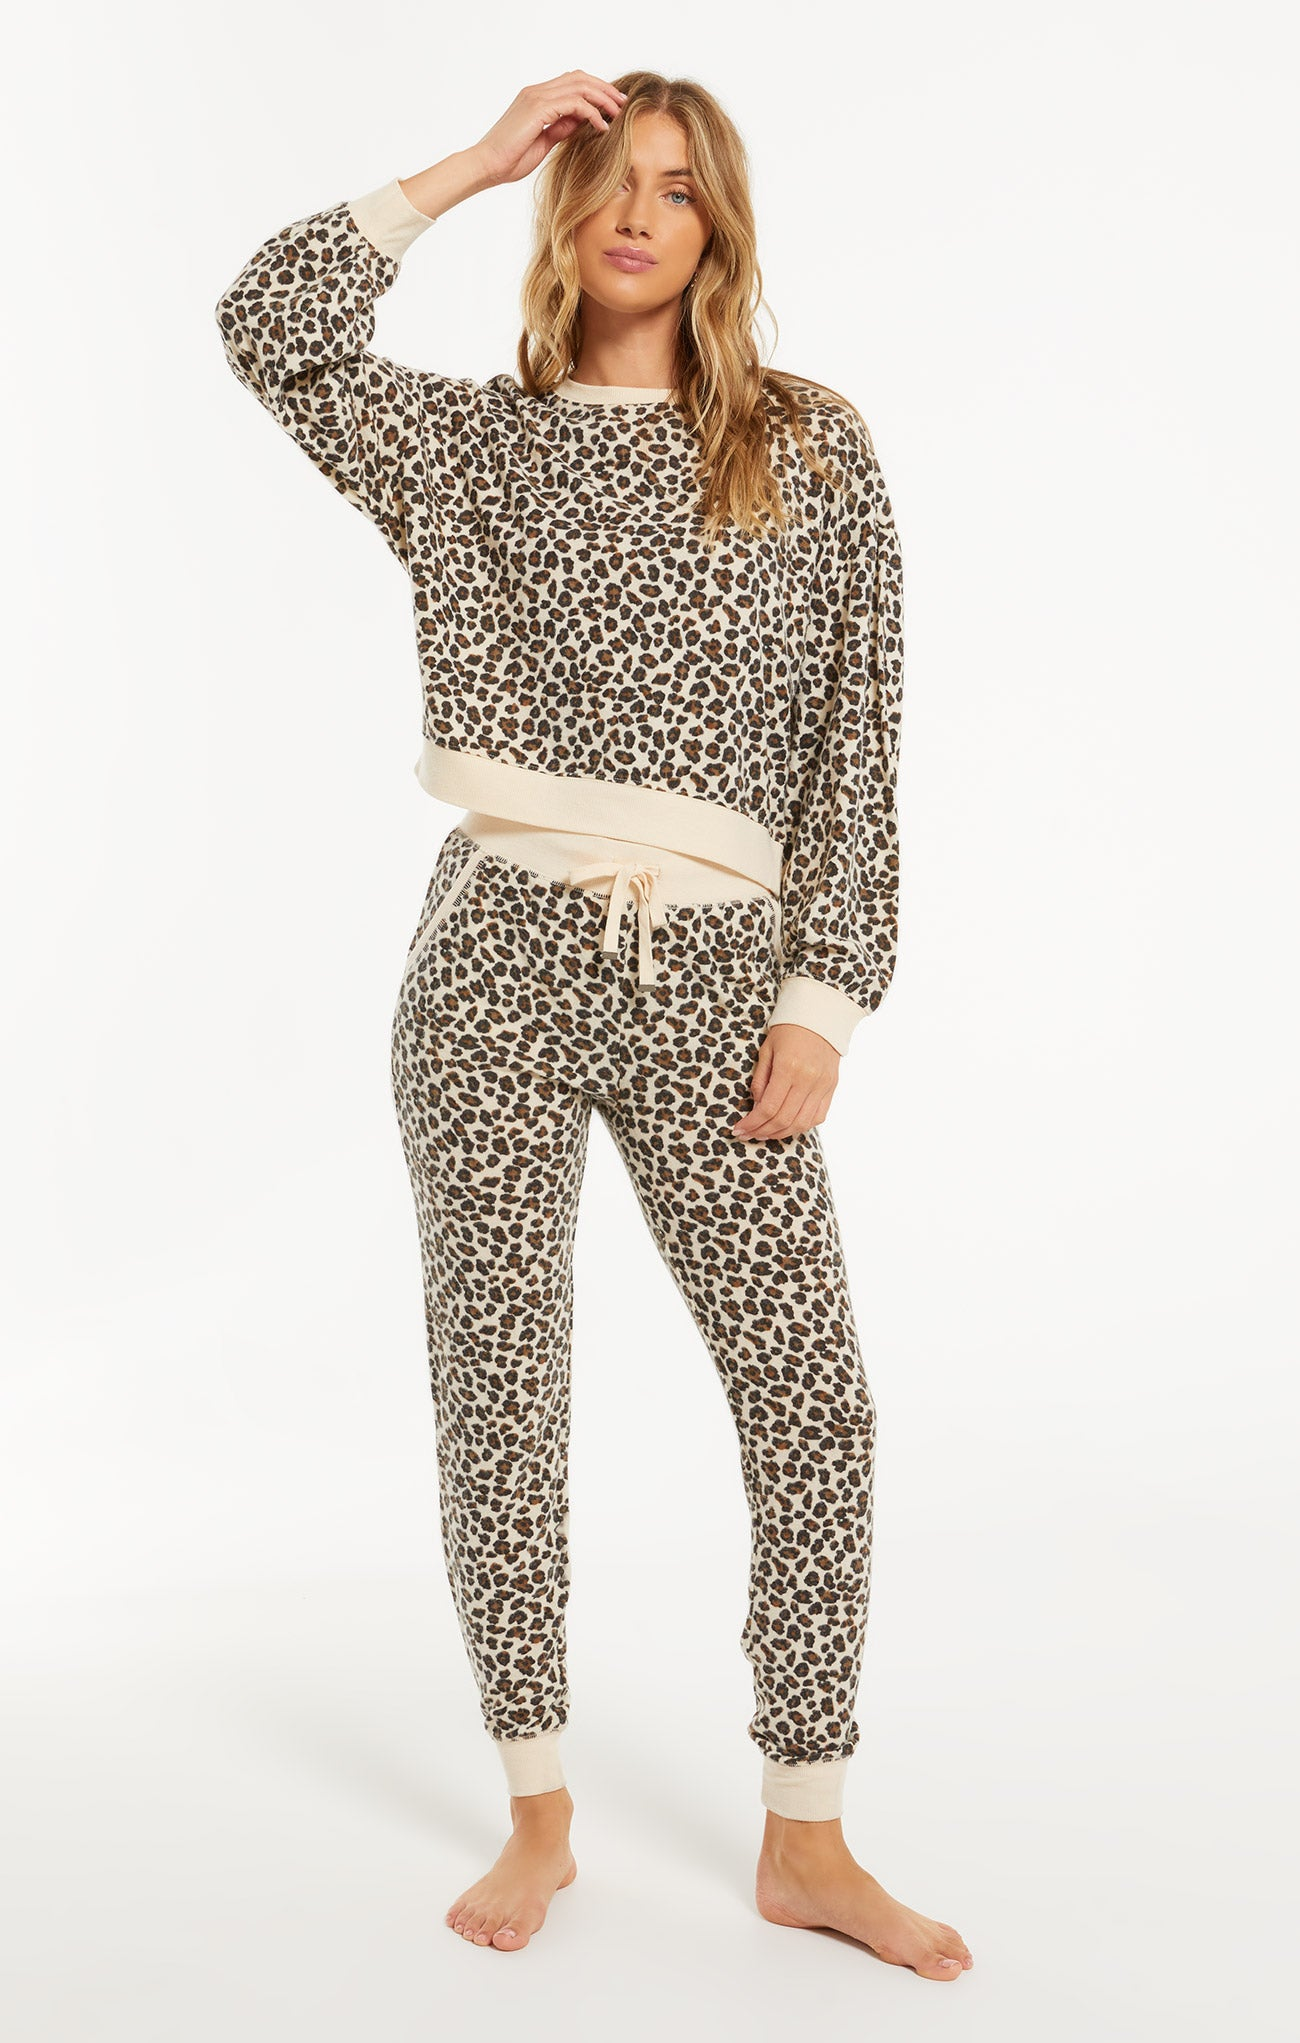 Pants Brushed Leopard Jogger Natural Combo